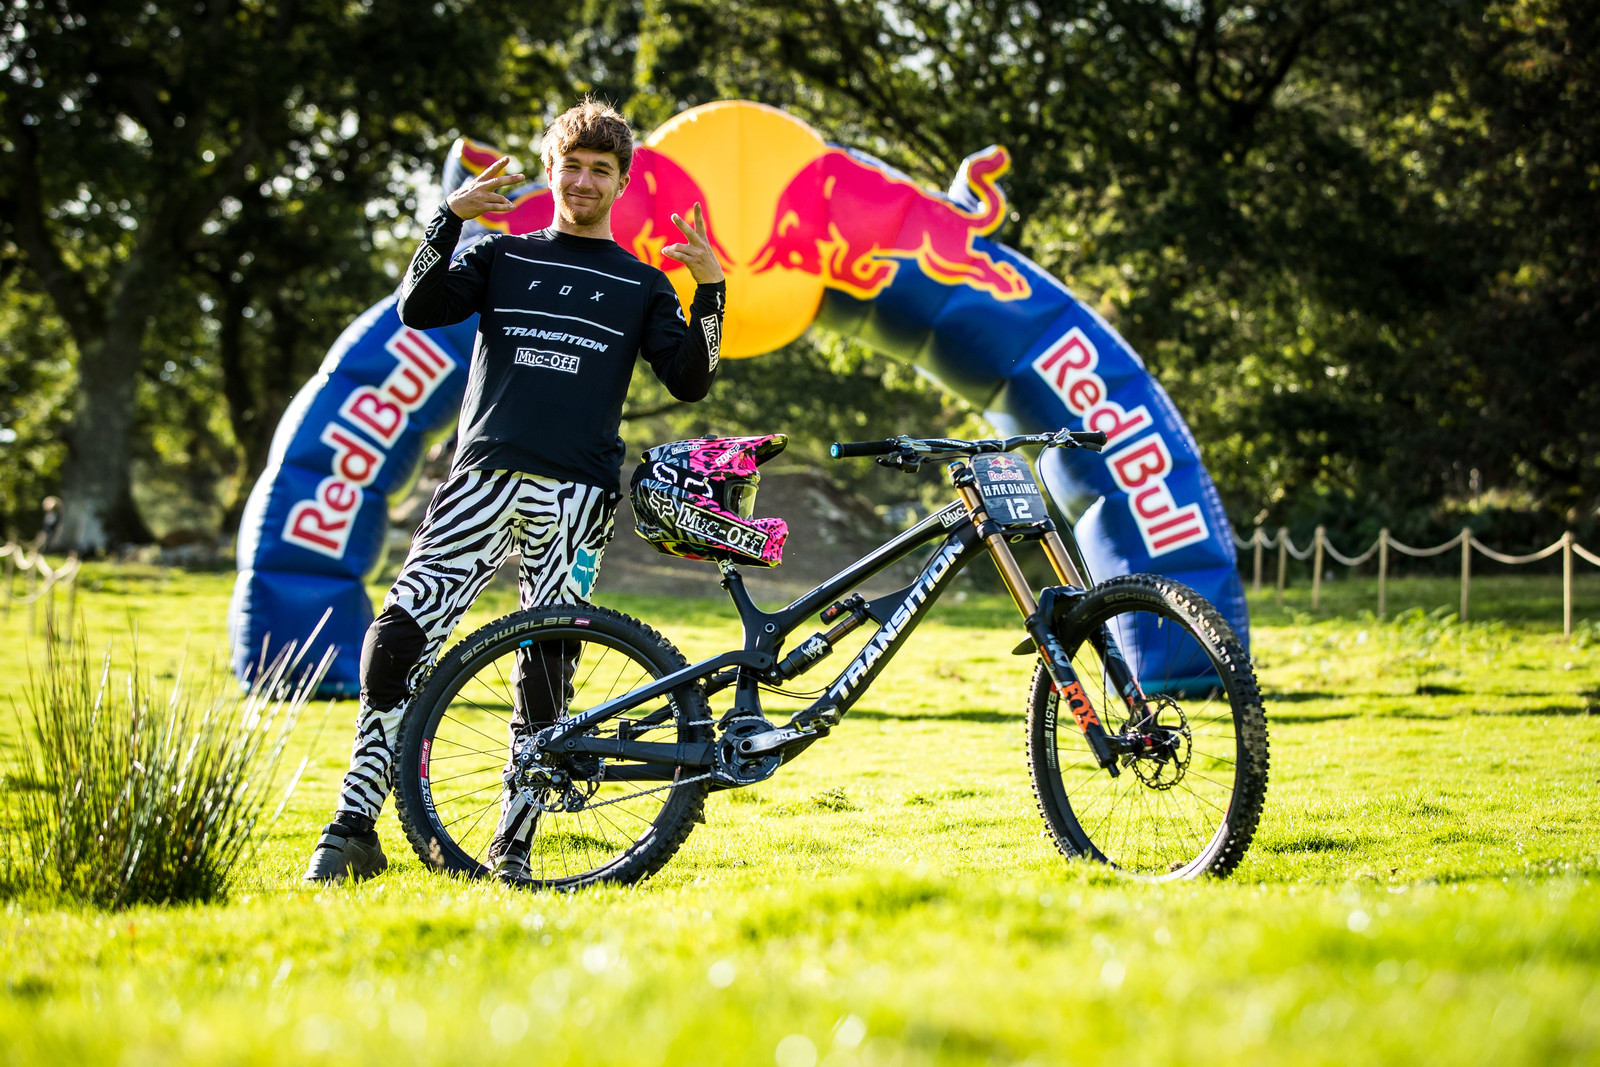 Kaos Seagrave with his Transition TR11 - The Bikes of Red Bull Hardline - Mountain Biking Pictures - Vital MTB